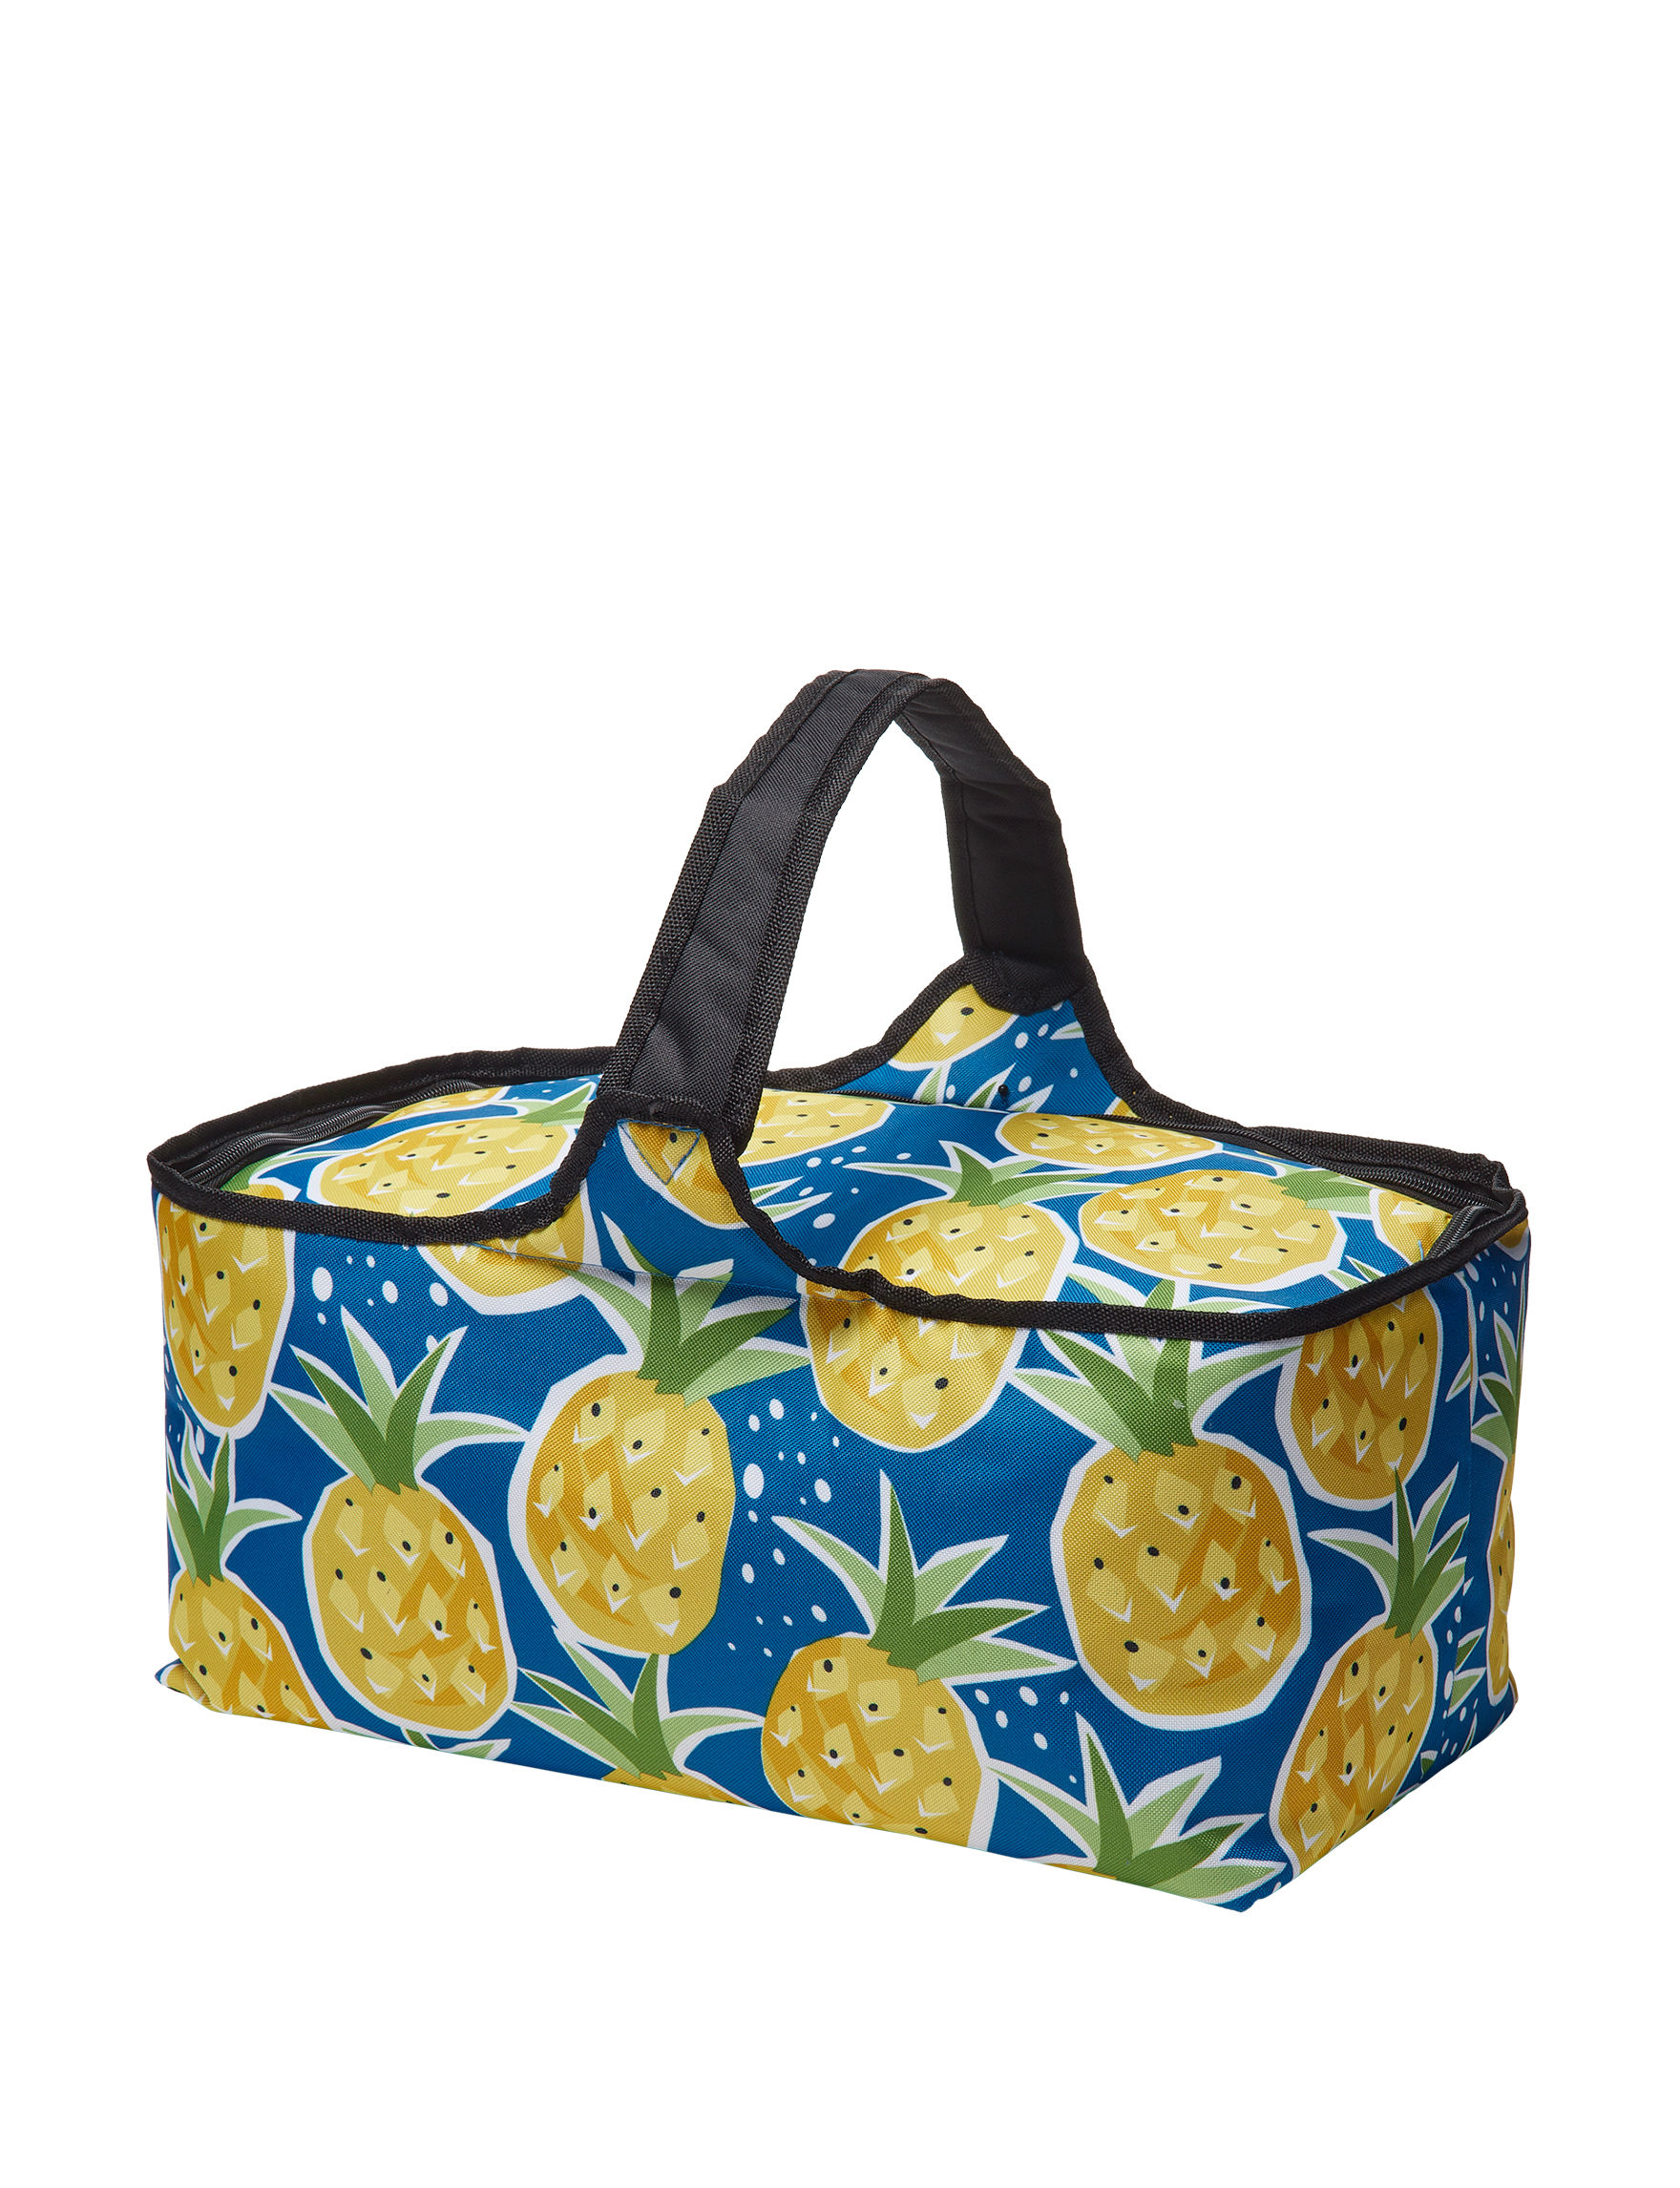 Home Essentials  Coolers Outdoor Entertaining